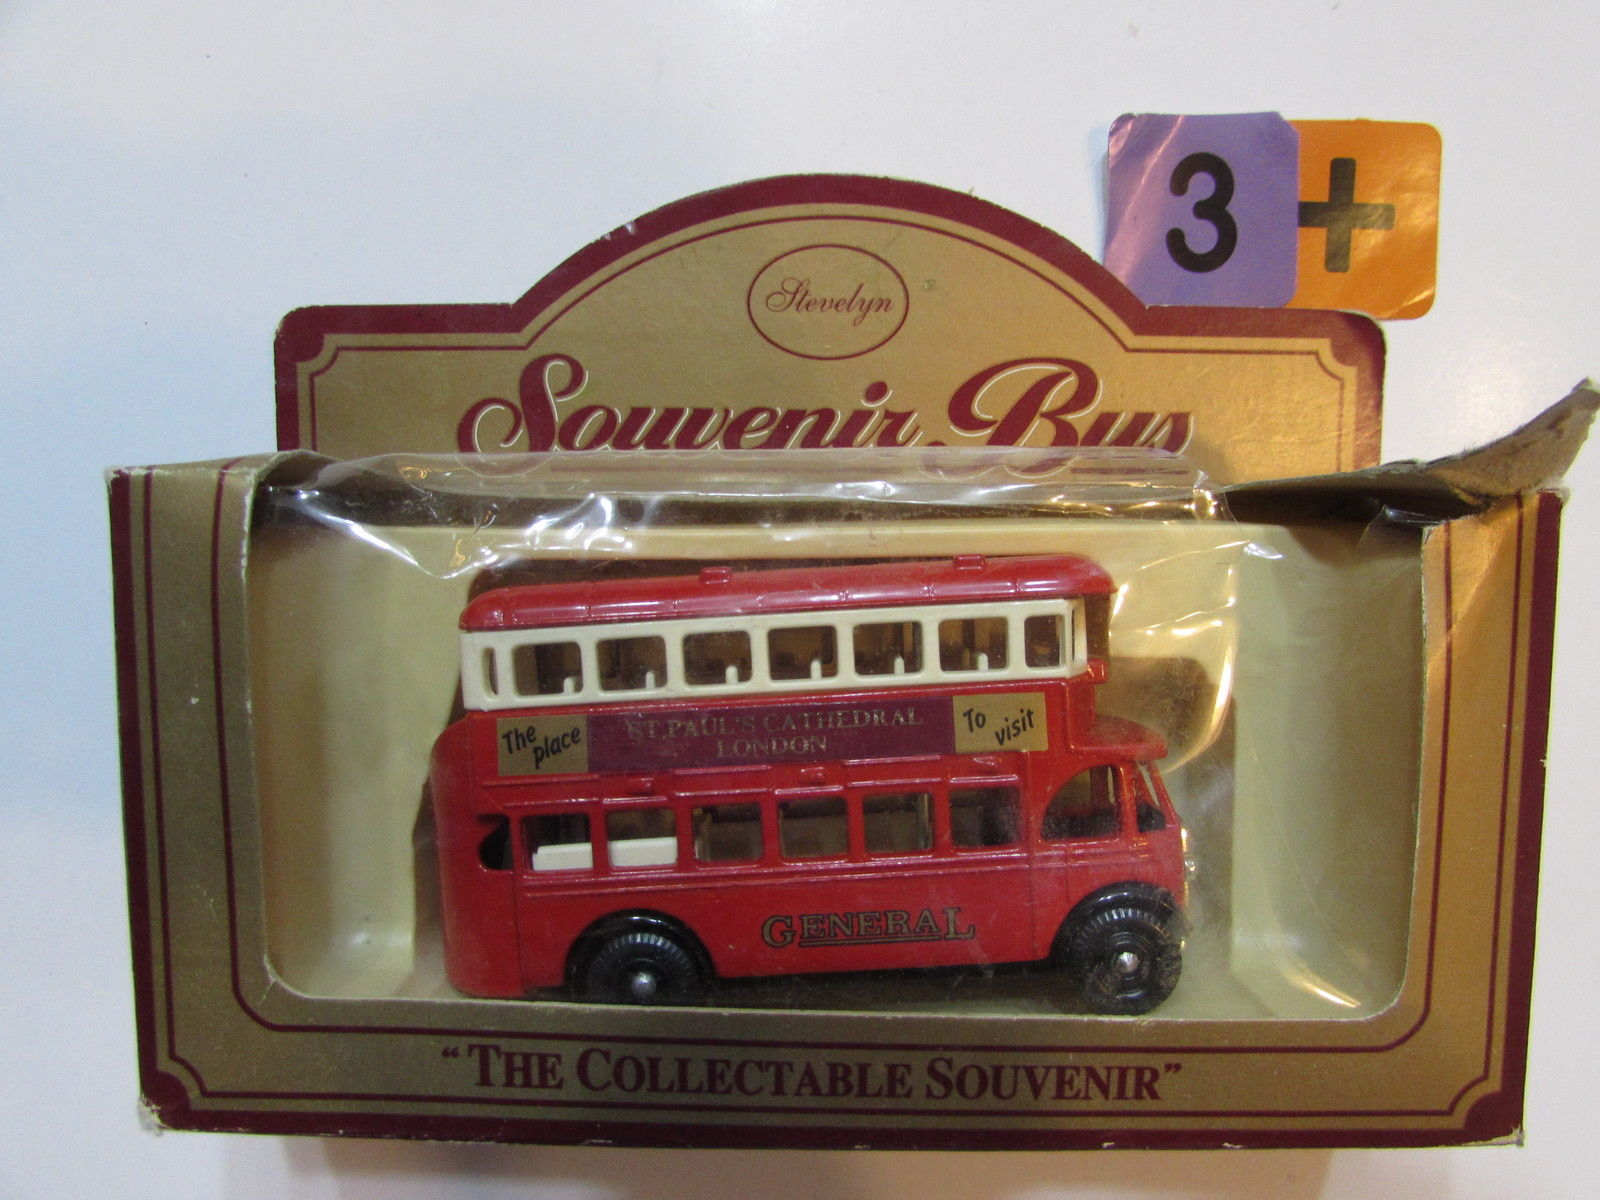 STEVELYN SOUVENIR BUS - THE COLLECTABLE SOUVENIR